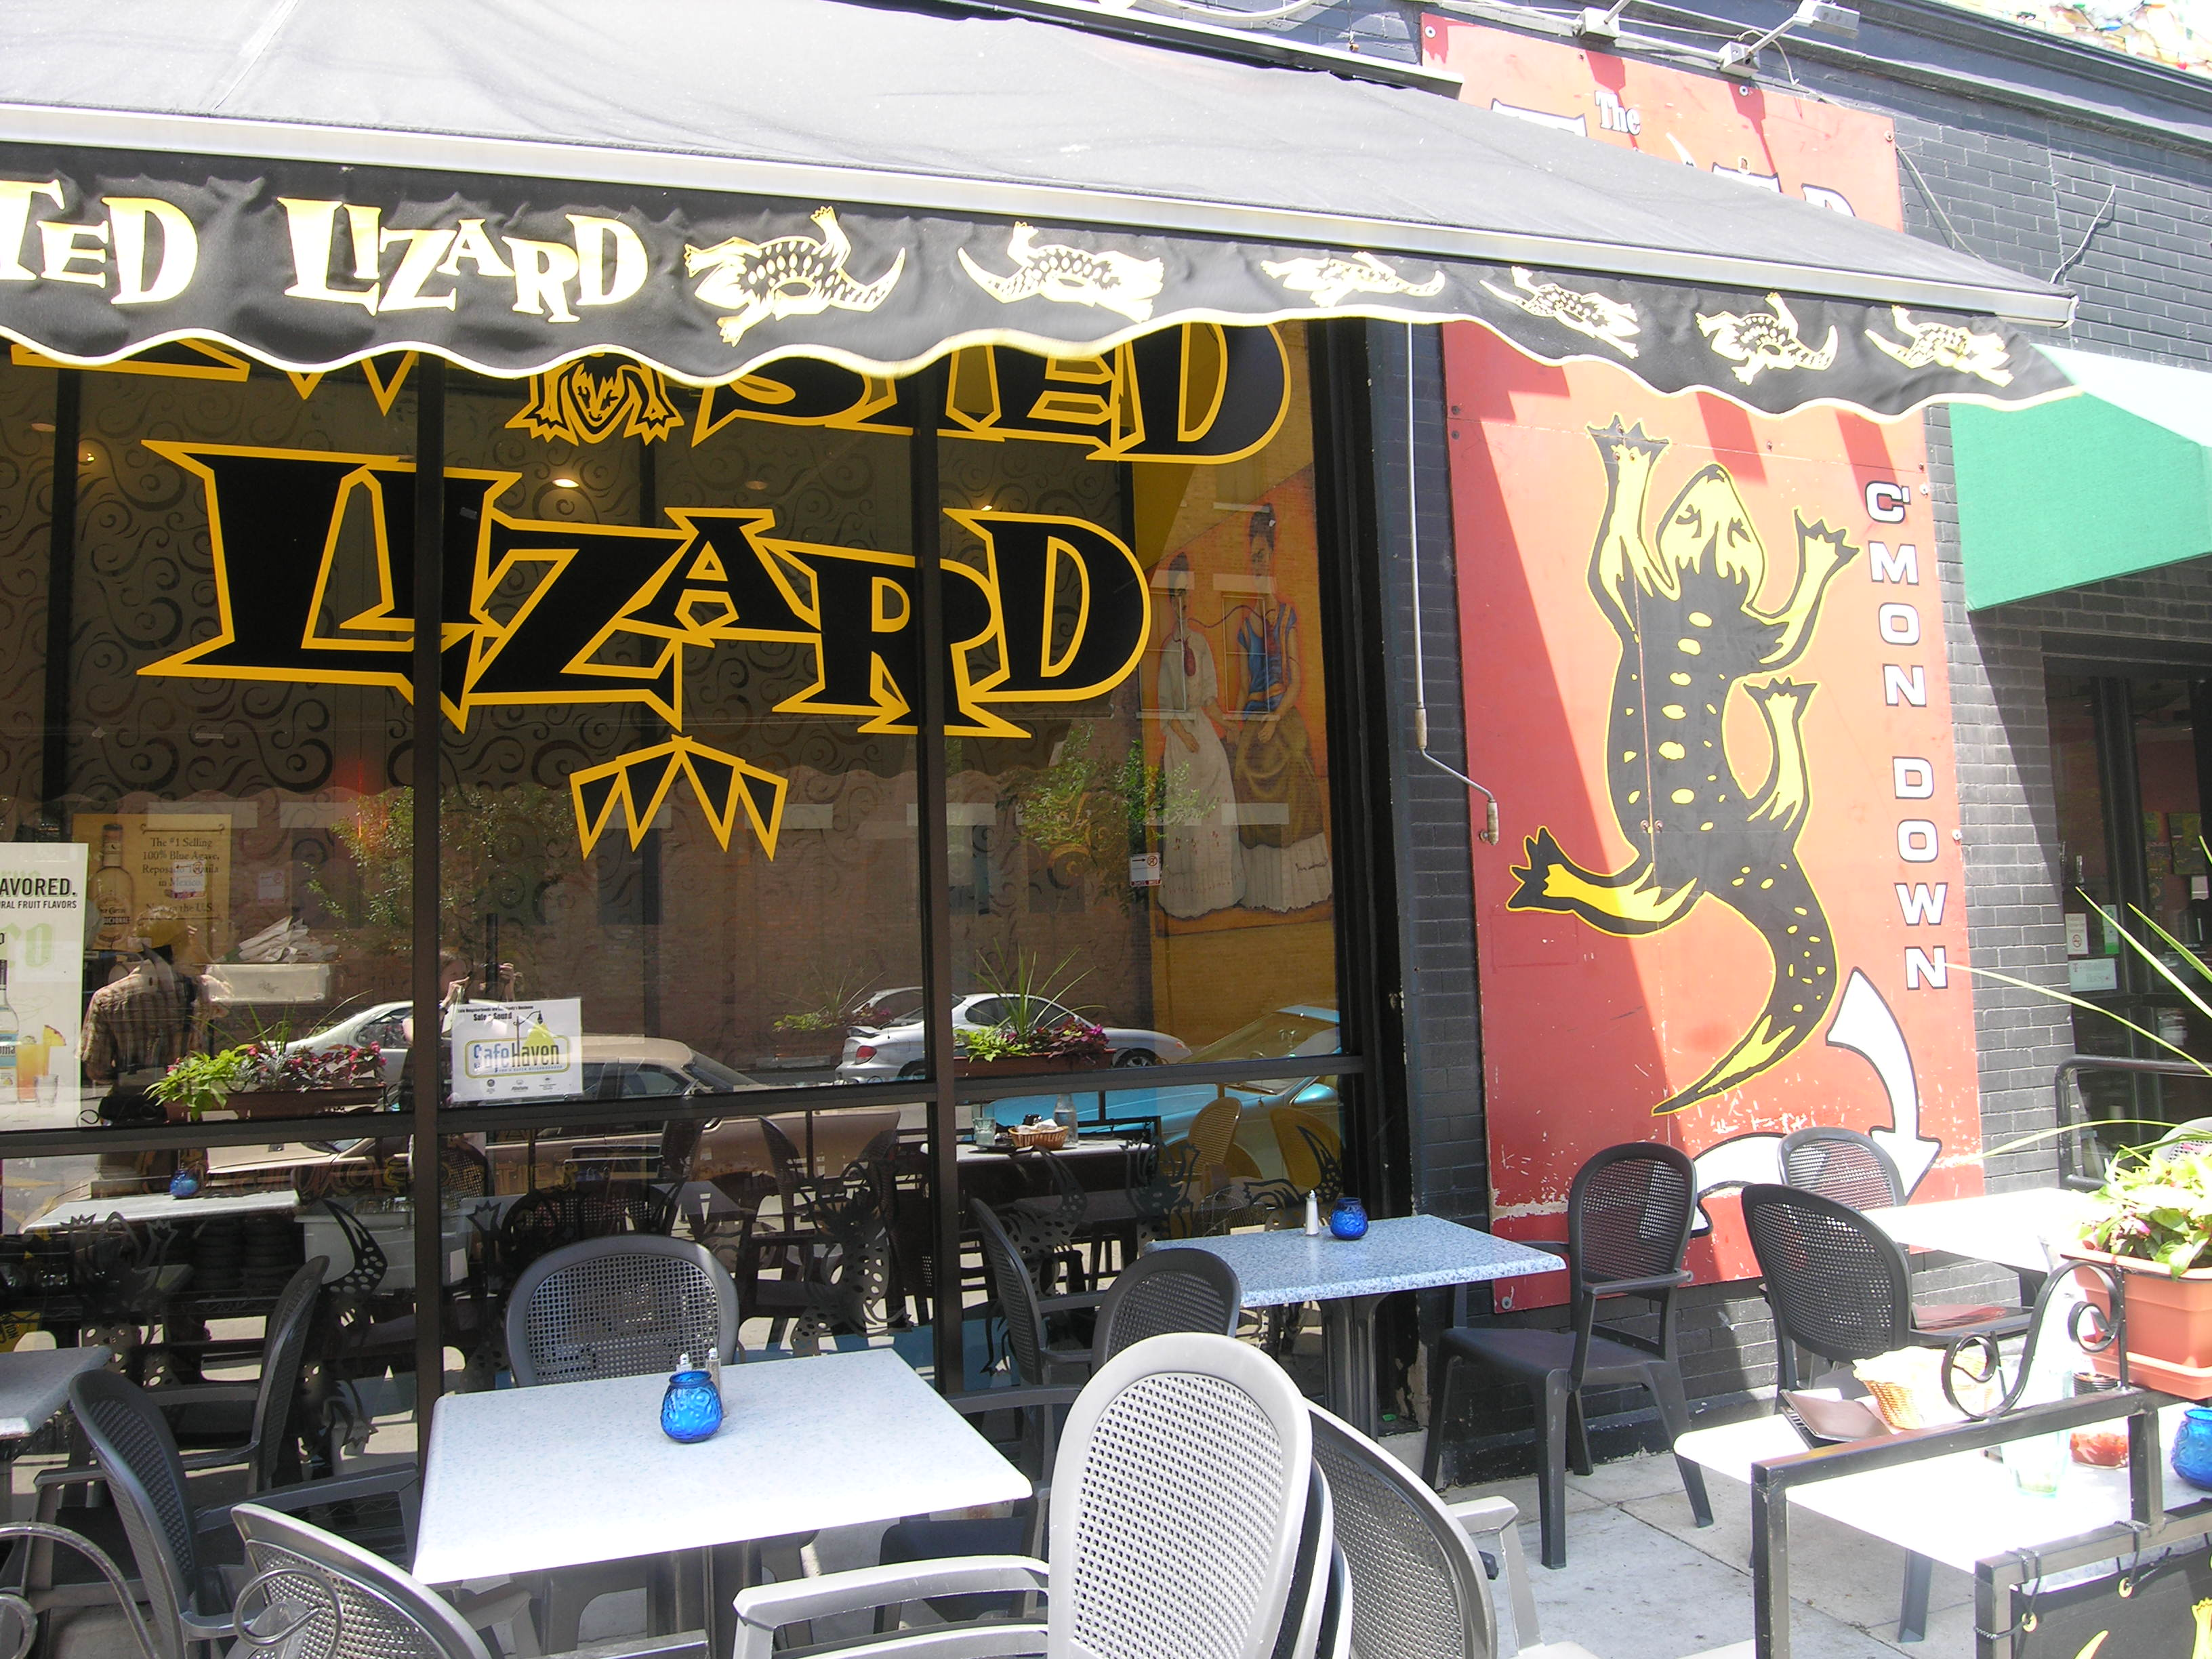 Sizzlin' signs at The Twisted Lizard in Lincoln Park